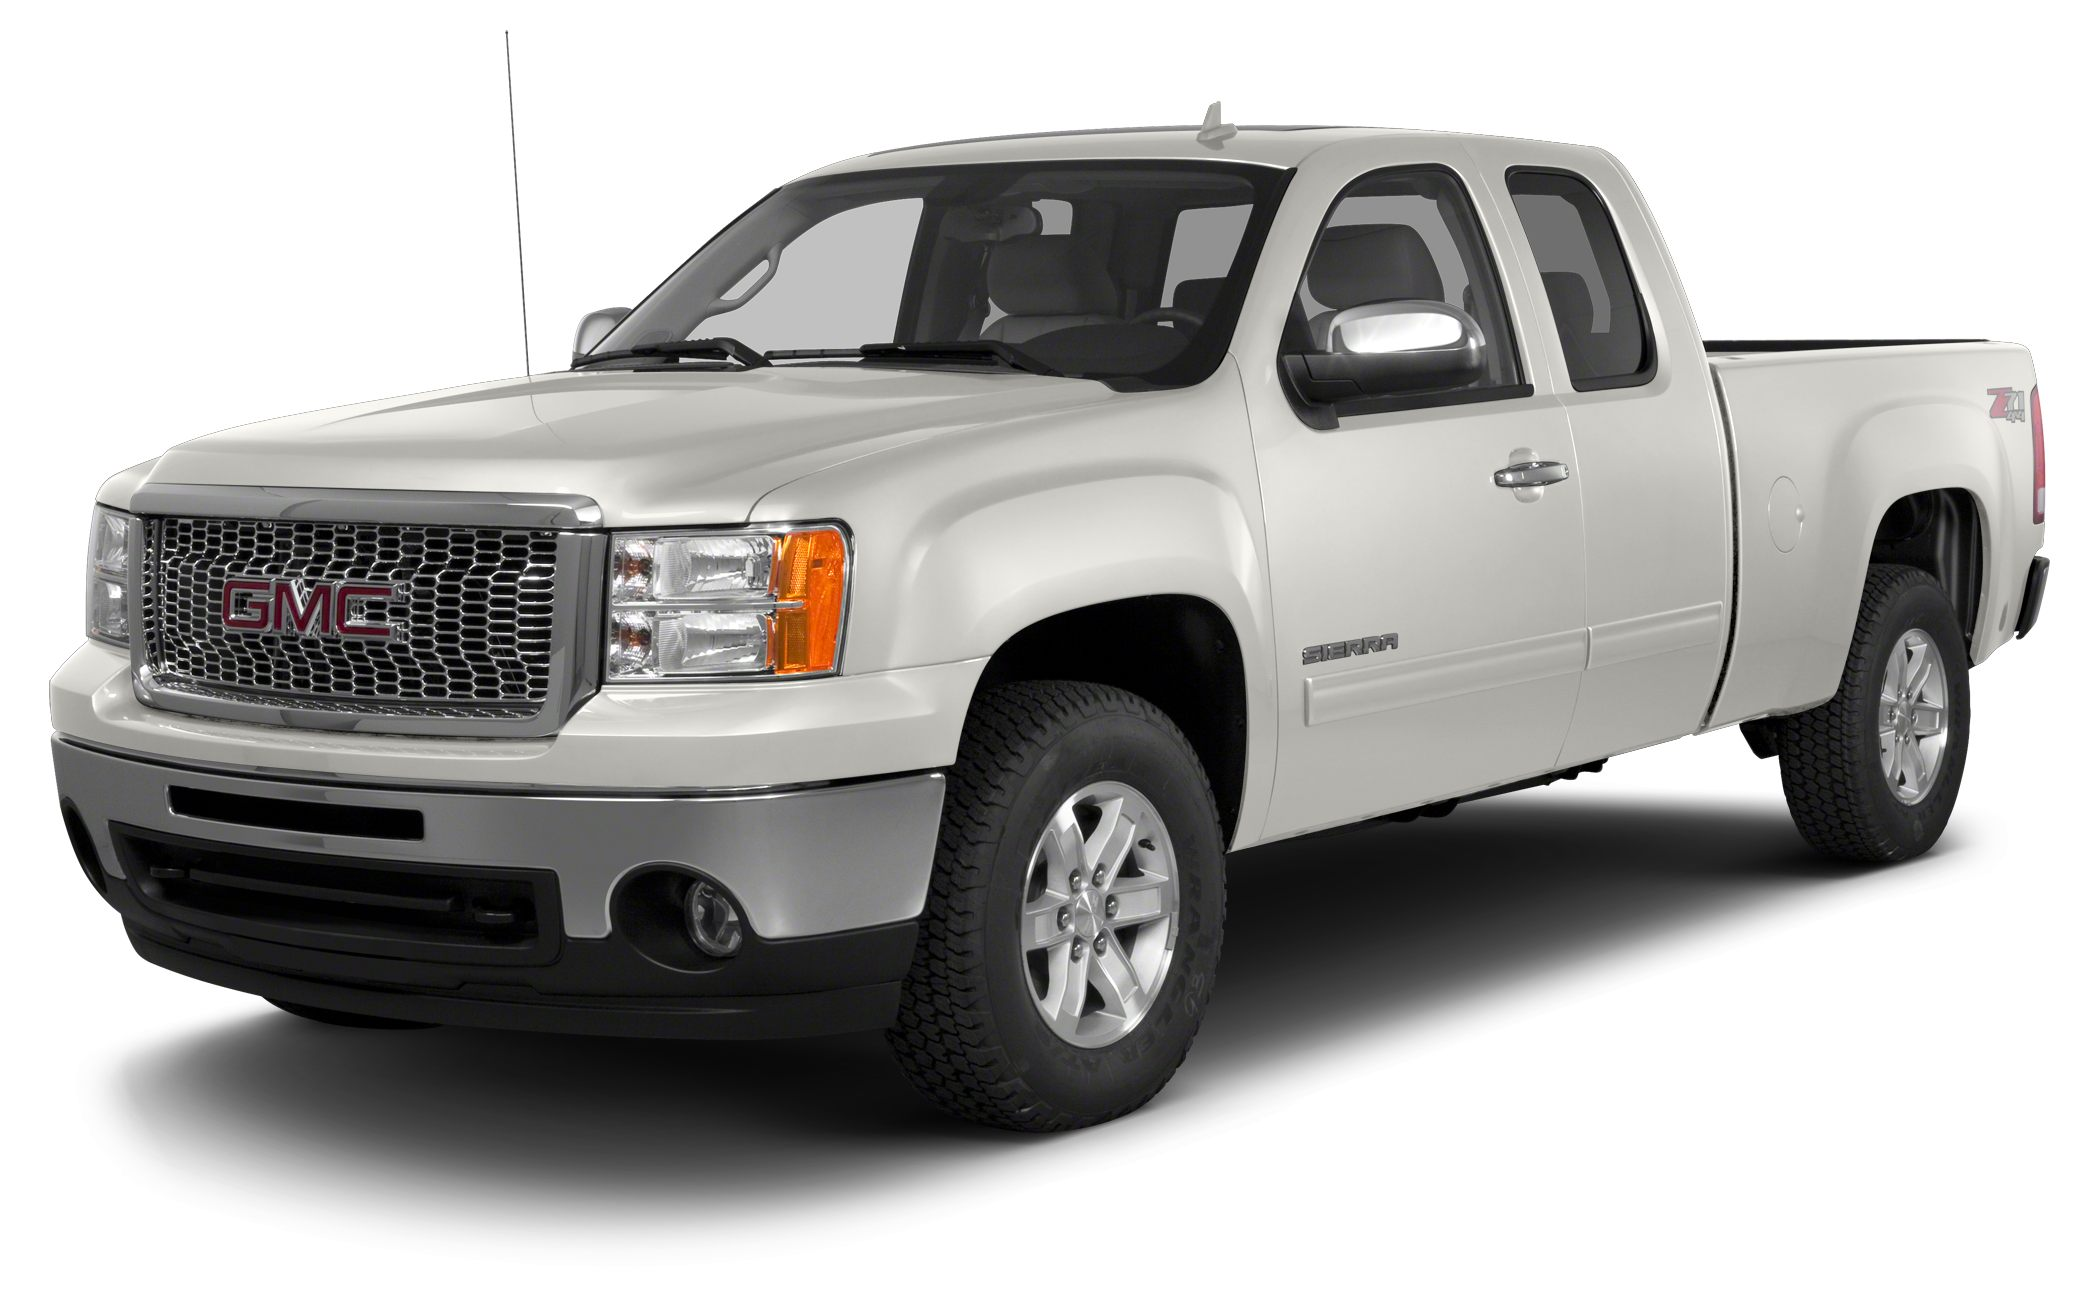 2013 GMC Sierra 1500 SLE SLE trim LPO CHROME GRILLE SURROUND WITH CHRO SUSPENSION PACKAGE HI